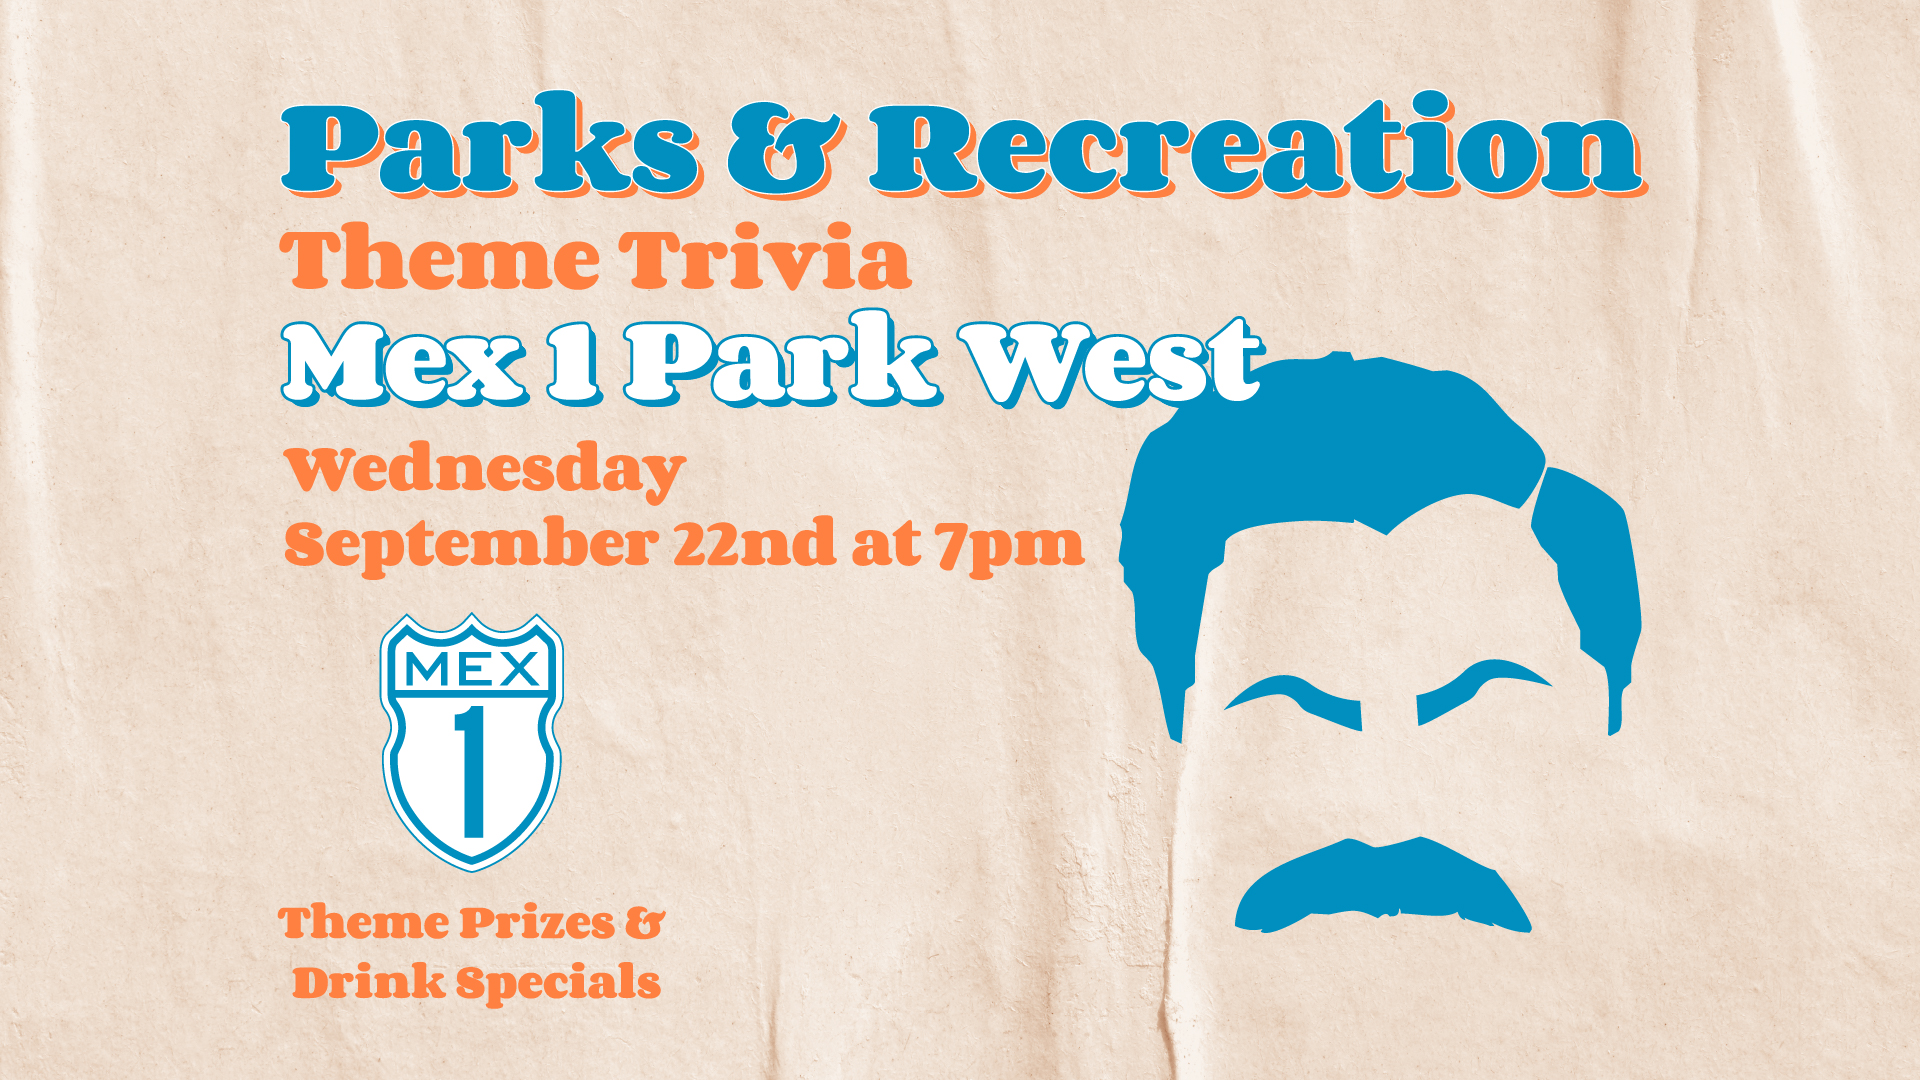 Parks and Rec Themed Trivia at Park West